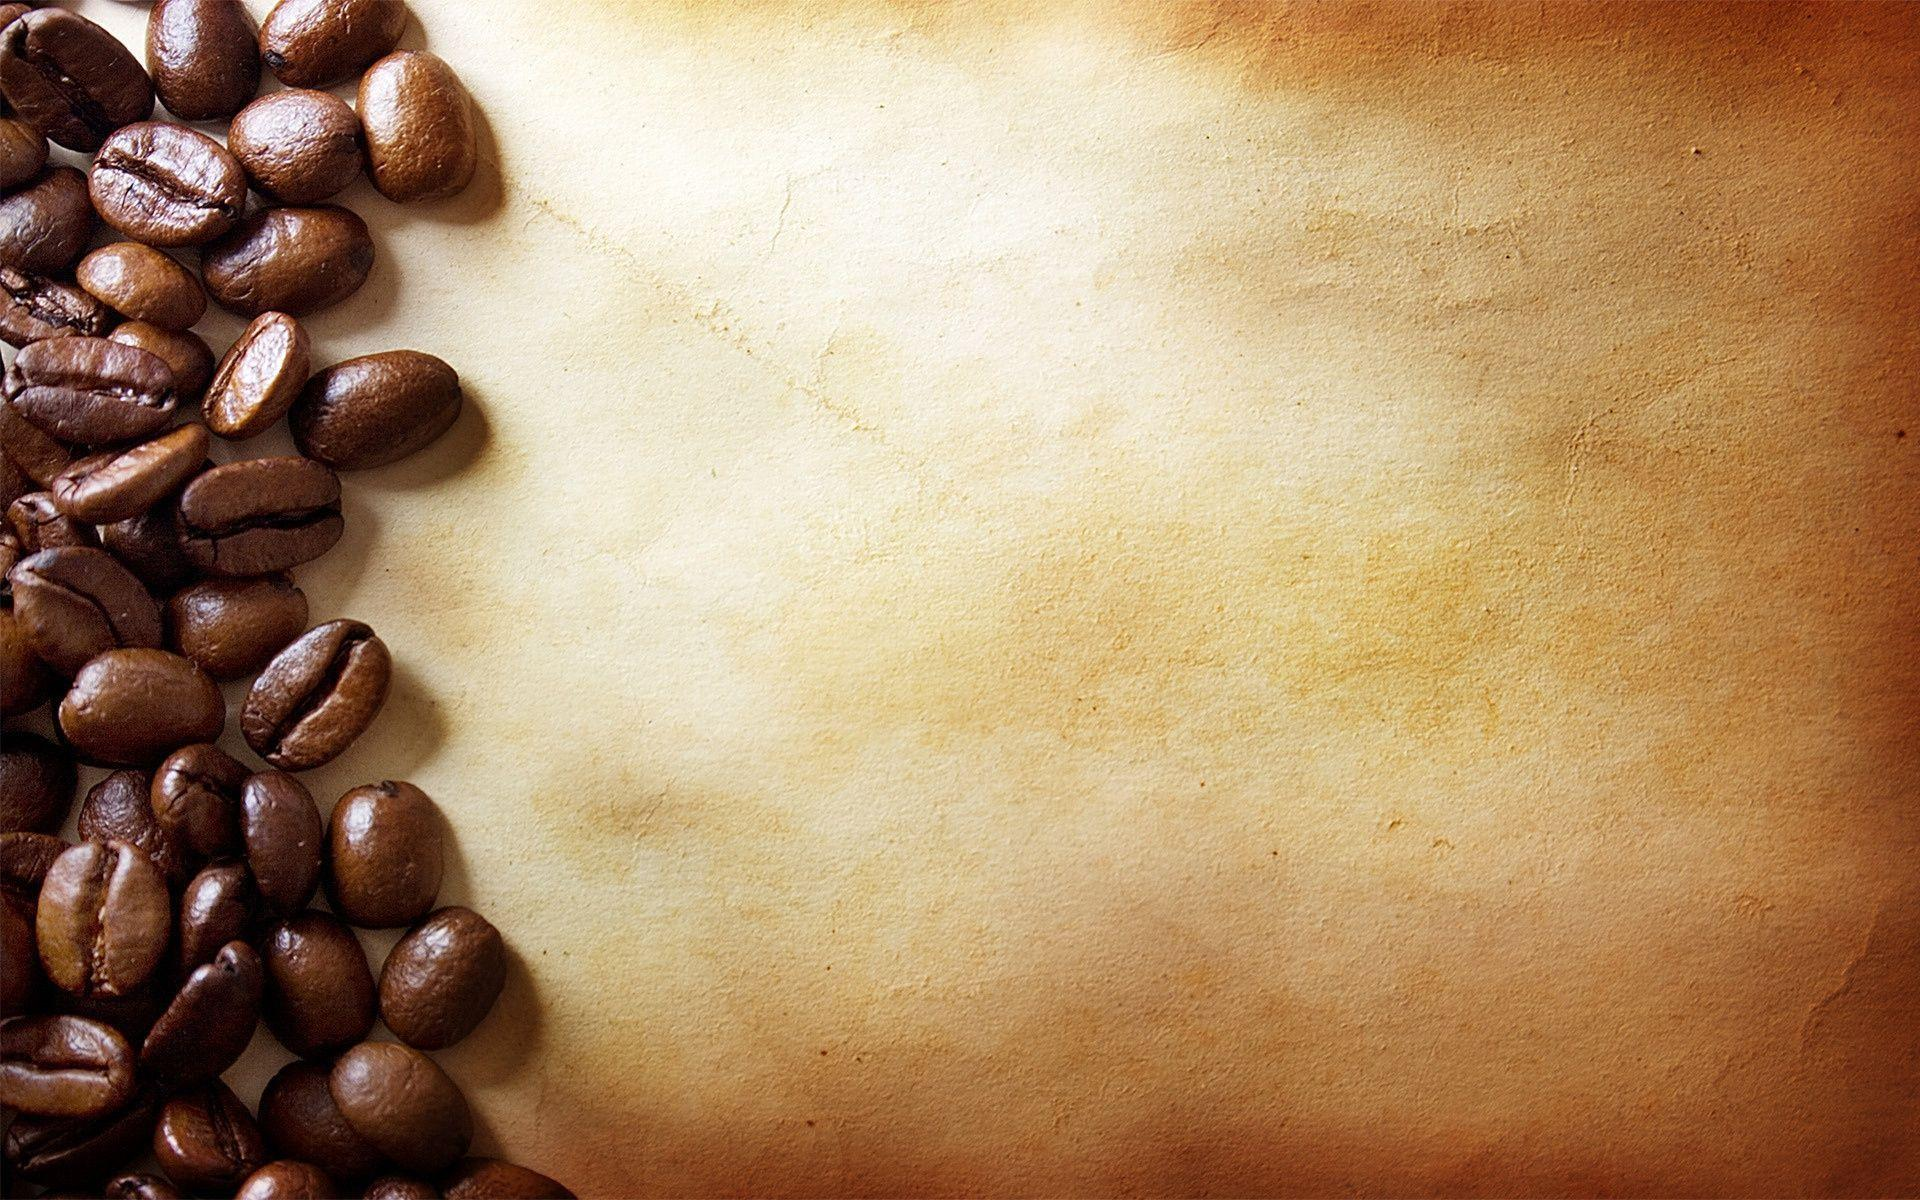 coffee bean wallpaper  Coffee Beans Backgrounds - Wallpaper Cave